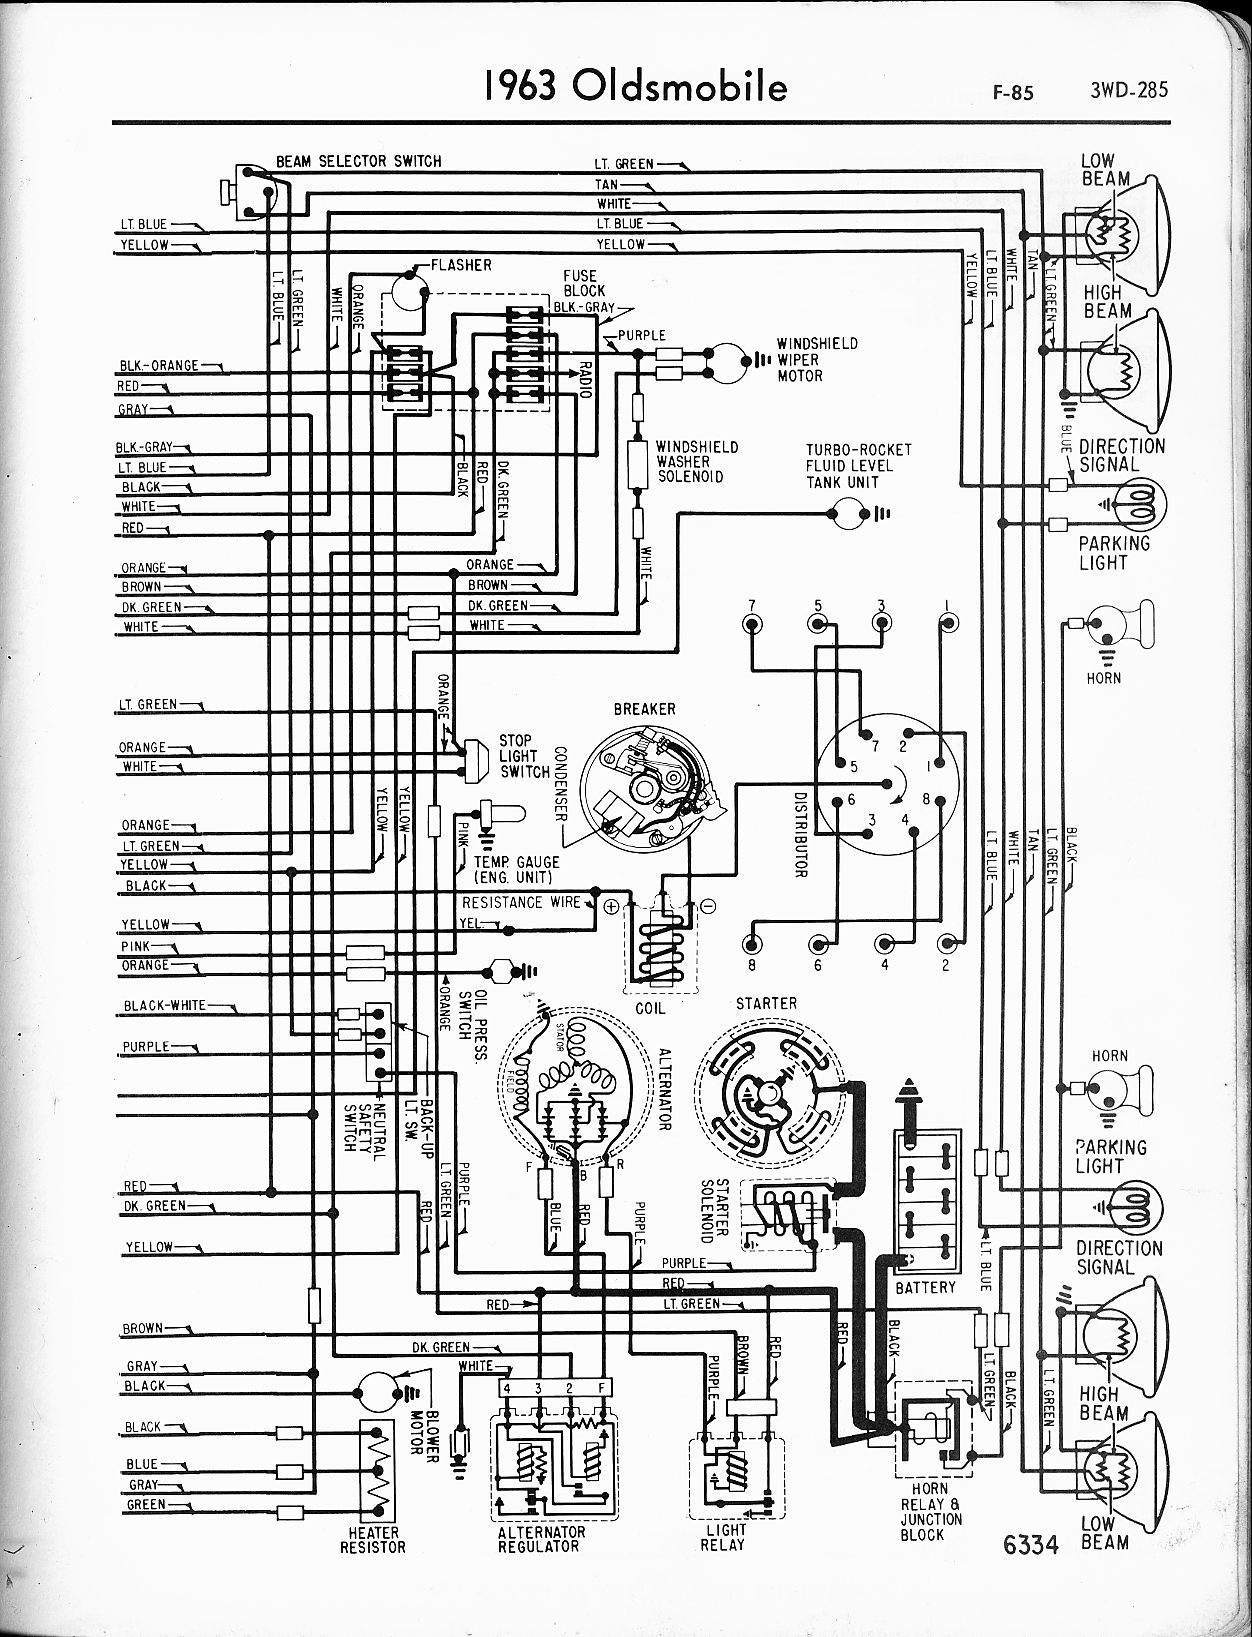 Alero Radio Wiring Diagram | Wiring Diagram on old johnson outboard parts diagram, old phone cable, phone line hook up diagram, phone jack installation diagram, old phone radio, old phone horn, old phone dimensions, old phone parts diagram, old phone cover, parts of a phone diagram, old electric diagram, old phone wiring colors, telephone parts diagram, cell phone diagram, old phone generator, old phone adapter, phone line connection diagram, old phone connector, old phone switch, old telephone diagram,